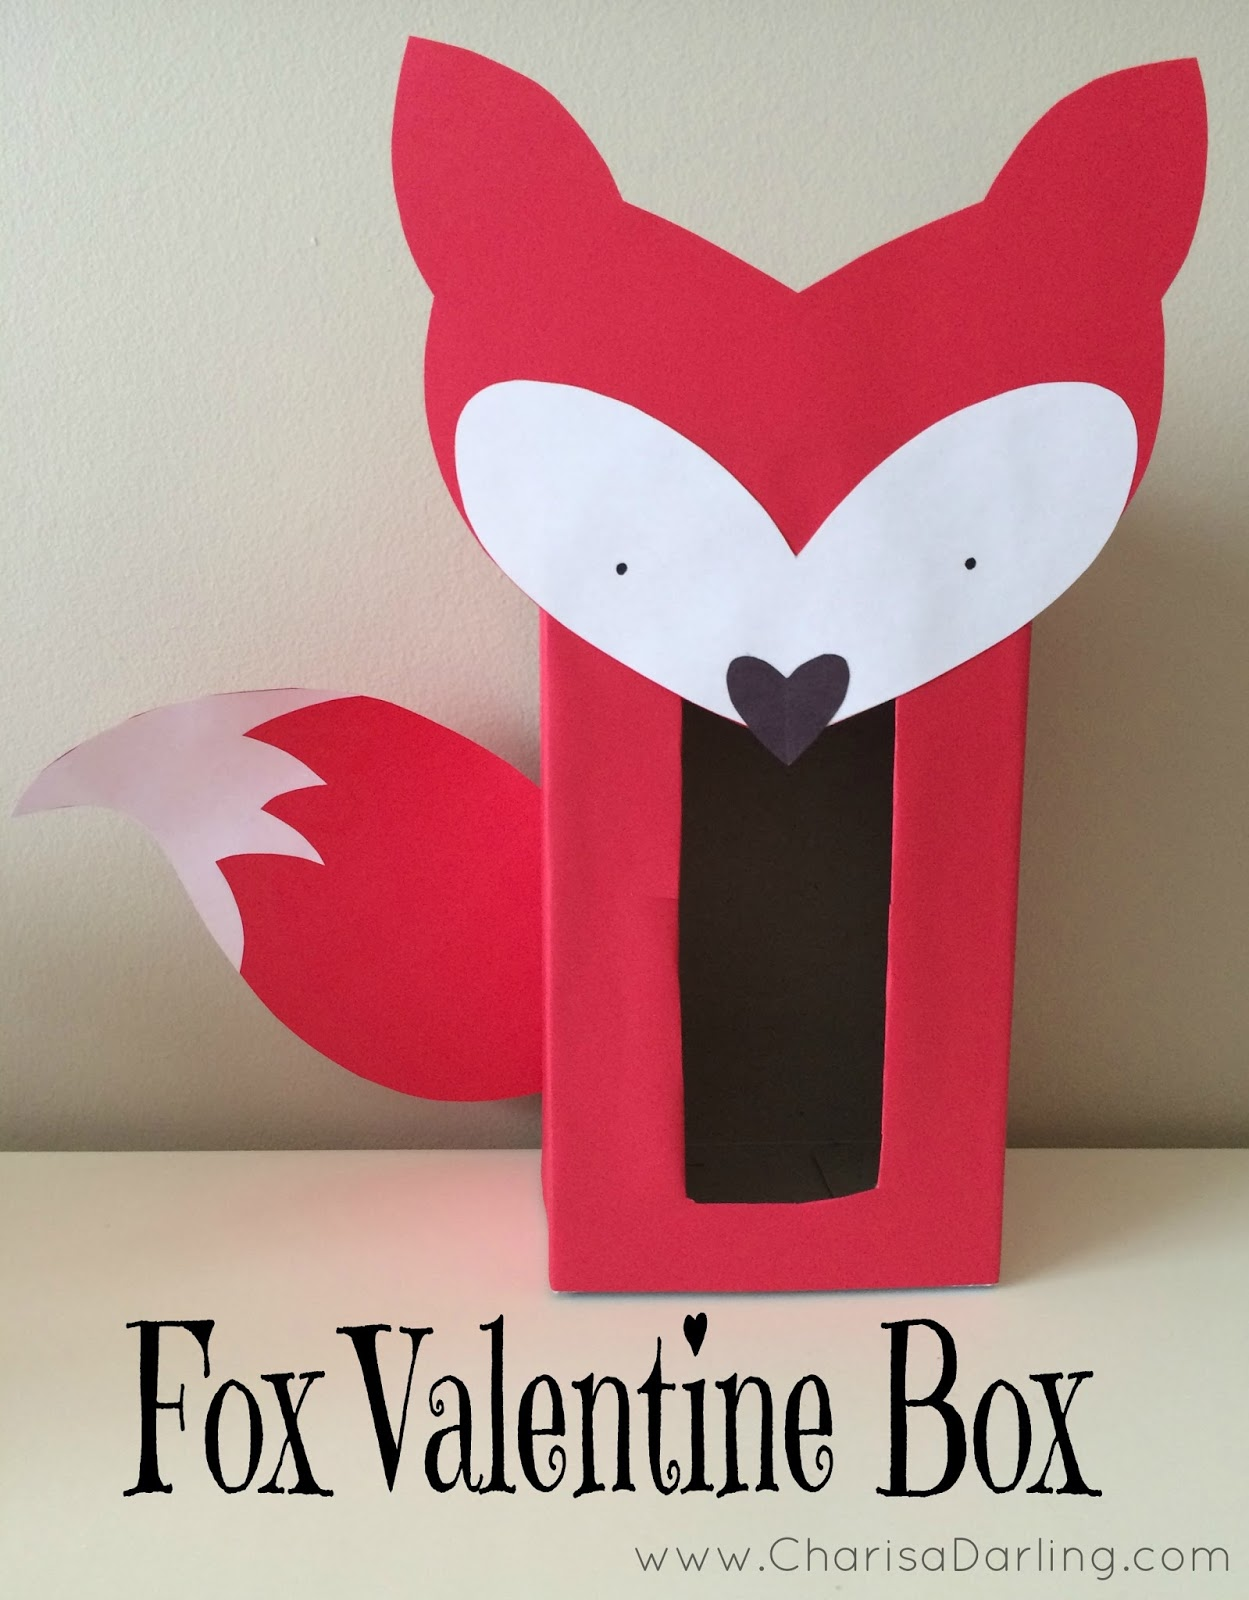 Fox Valentine Box Charisa Darling